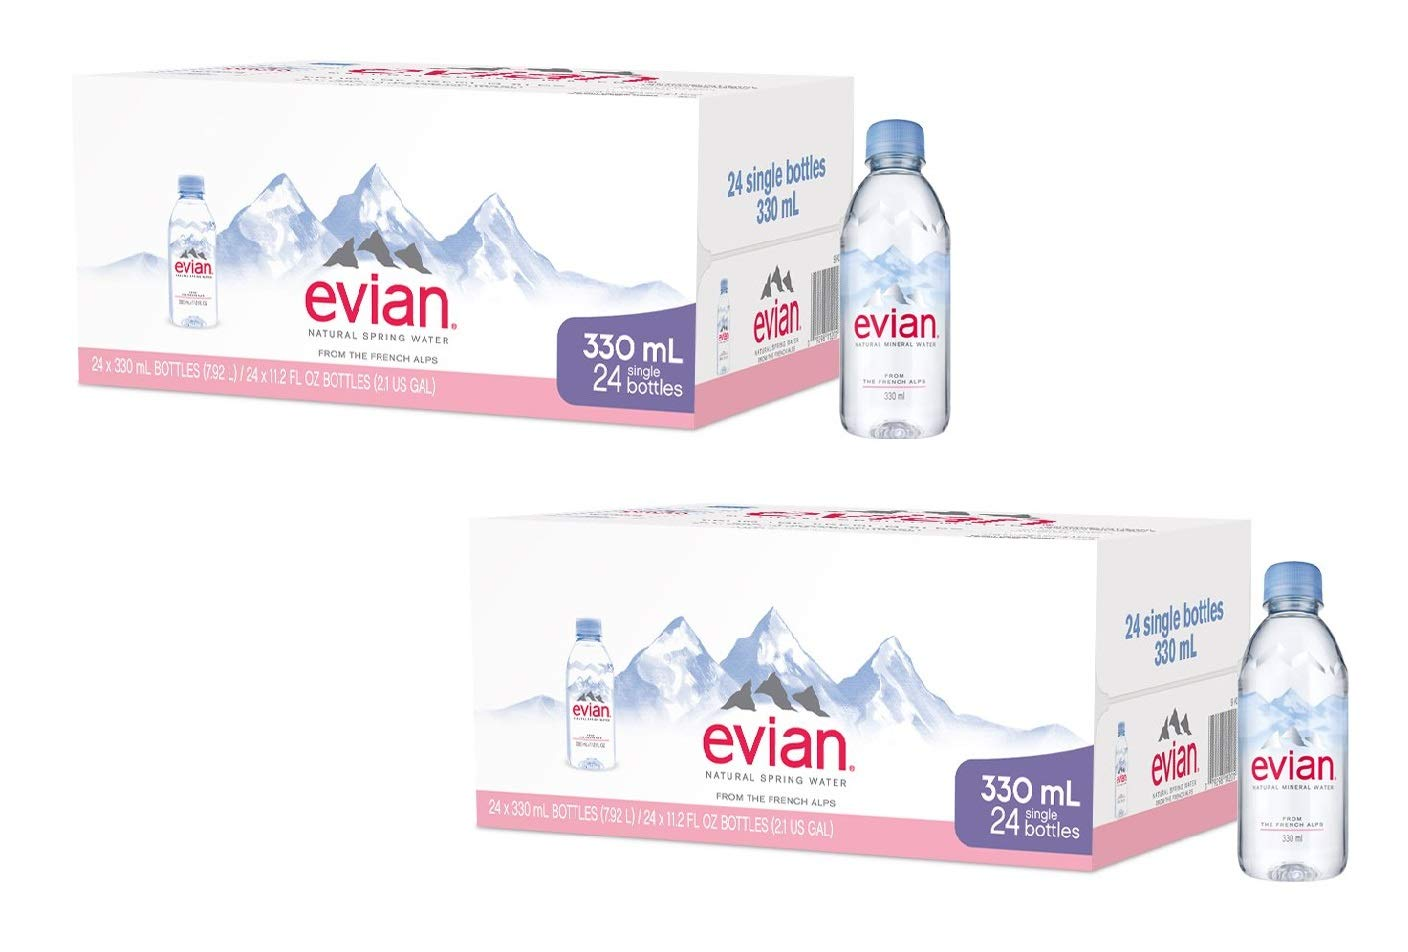 evian Natural Spring Water One Case of 24 Individual 330 ml (11.2 Fl. Oz.) Mini-Bottles, Naturally Filtered Spring Water Small Water Bottles (2 Pack)